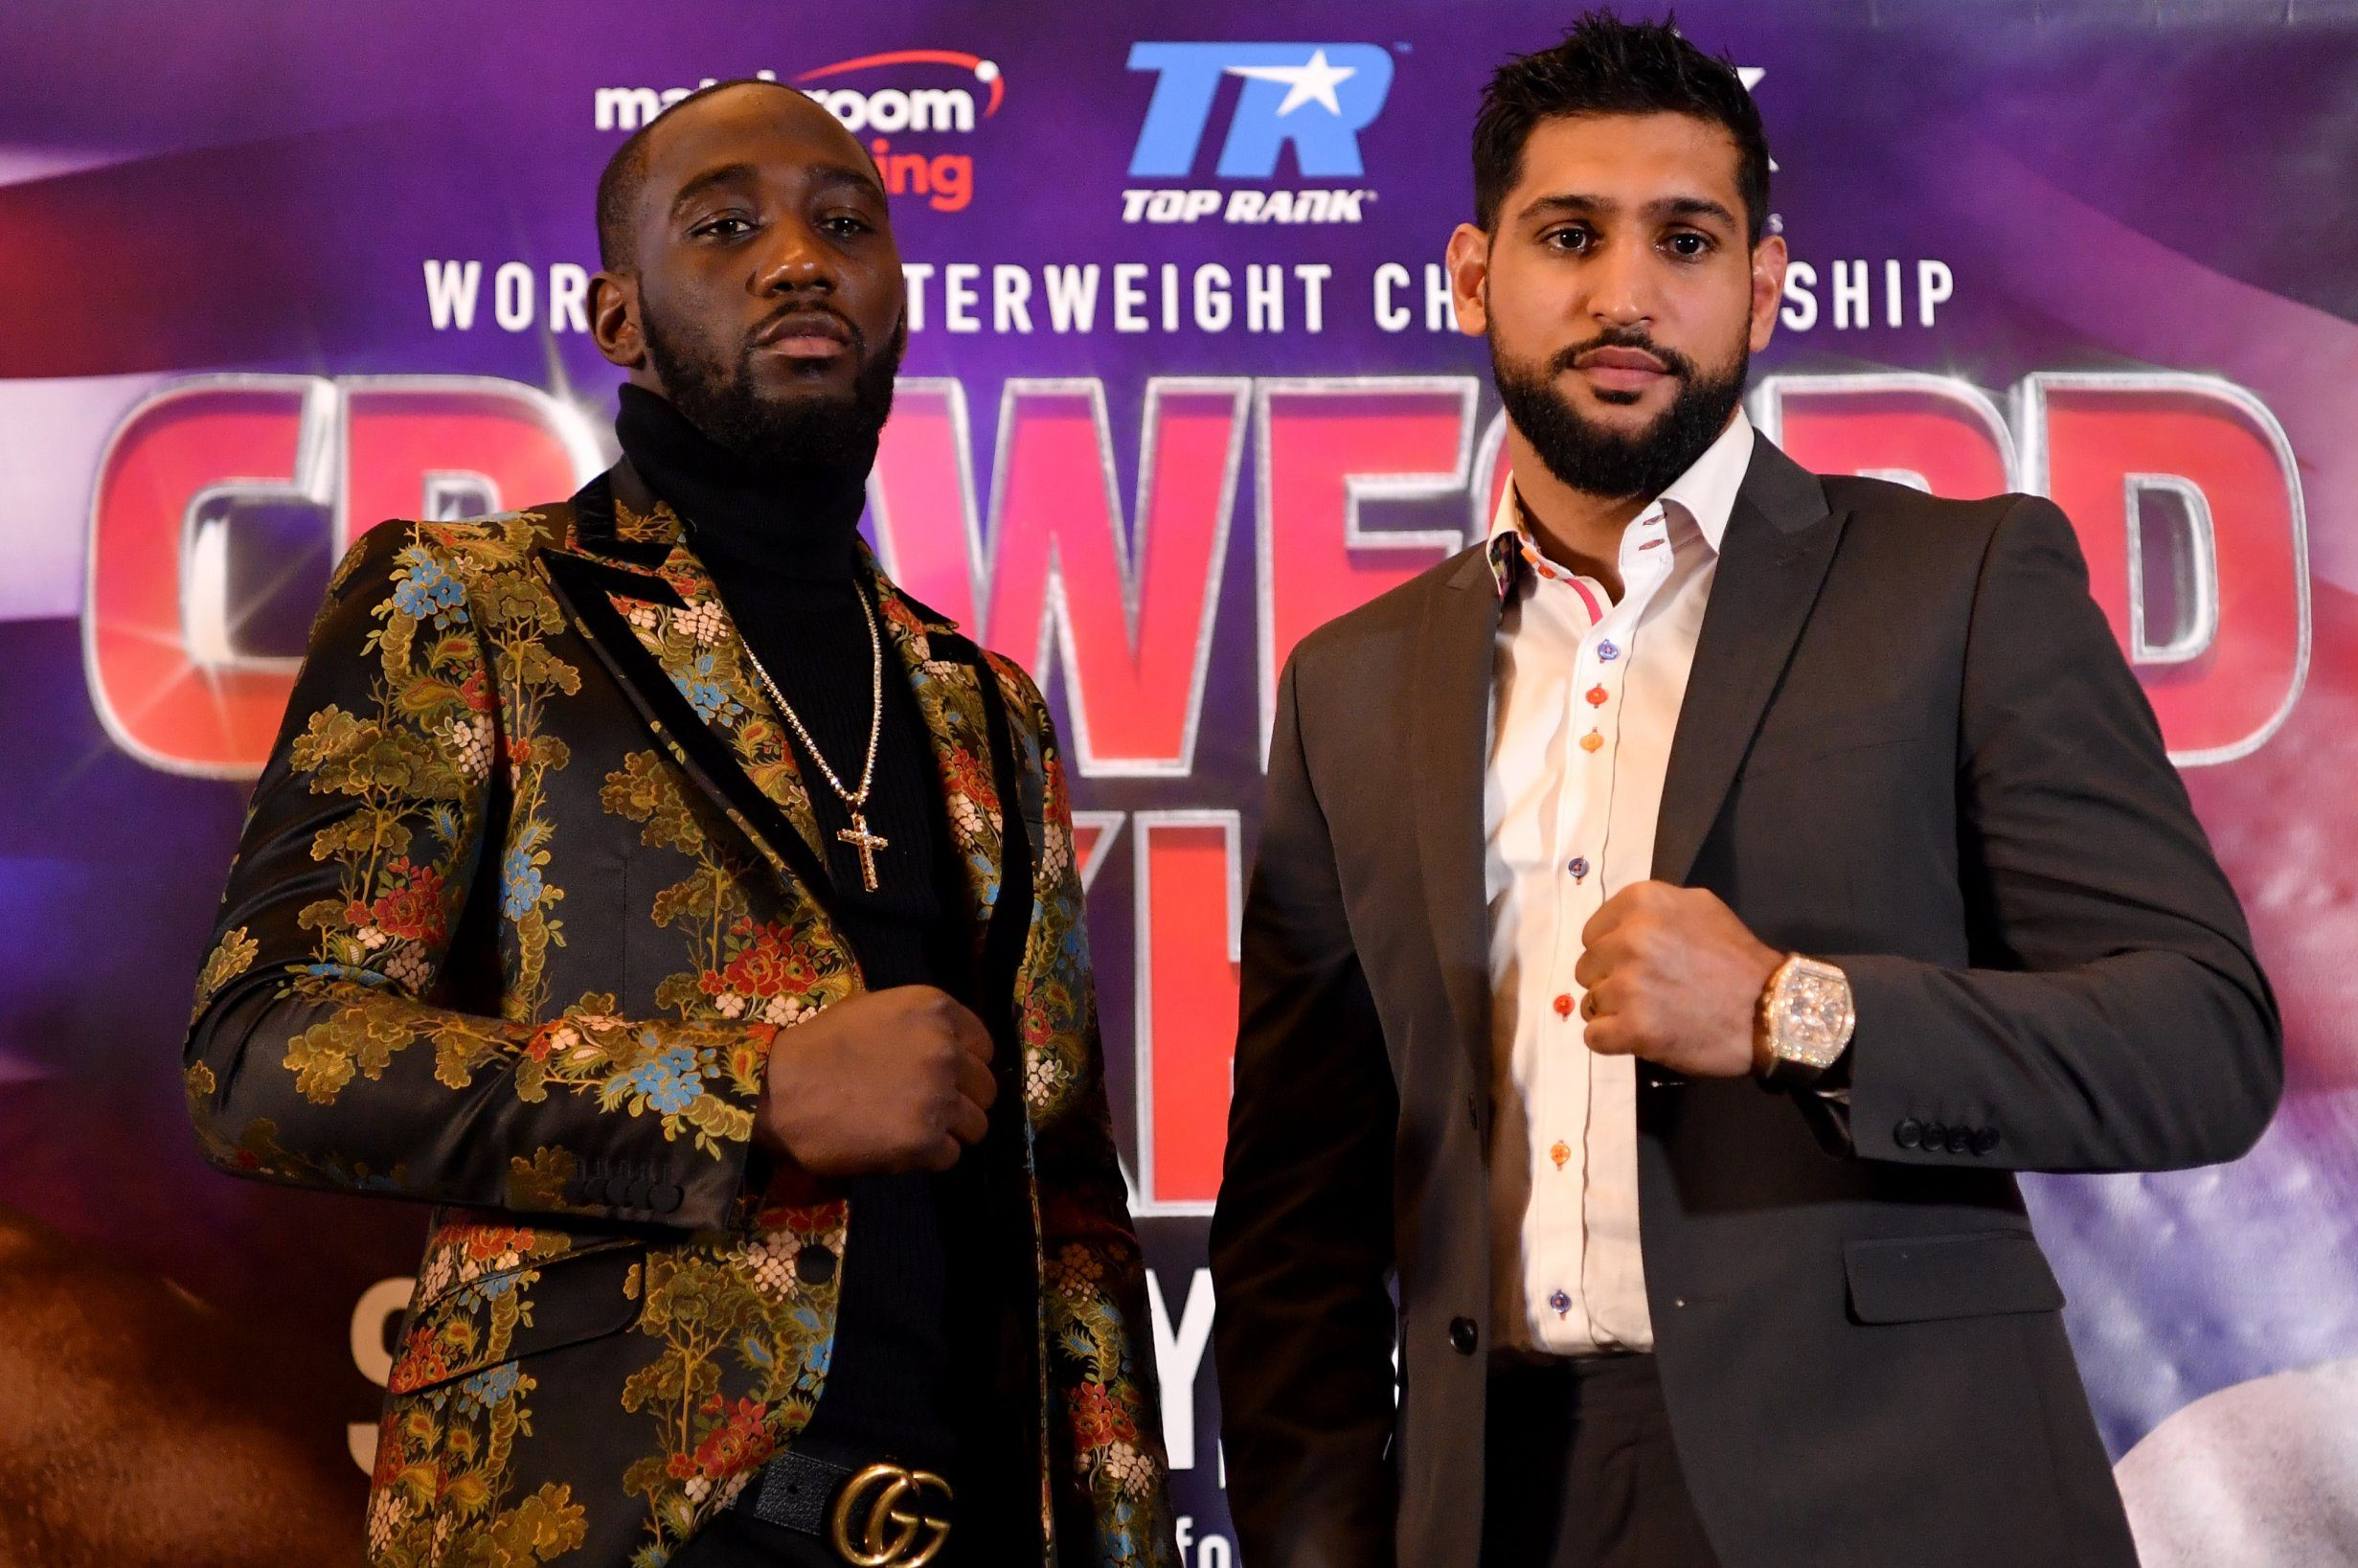 LONDON, ENGLAND - JANUARY 15: Terence Crawford and Amir Khan face up during a Terence Crawford and Amir Khan Press Conference on January 15, 2019 in London, England. Amir Khan has agreed to face undefeated WBO world welterweight champion Terence Crawford in the United States on 20 April. (Photo by Justin Setterfield/Getty Images)